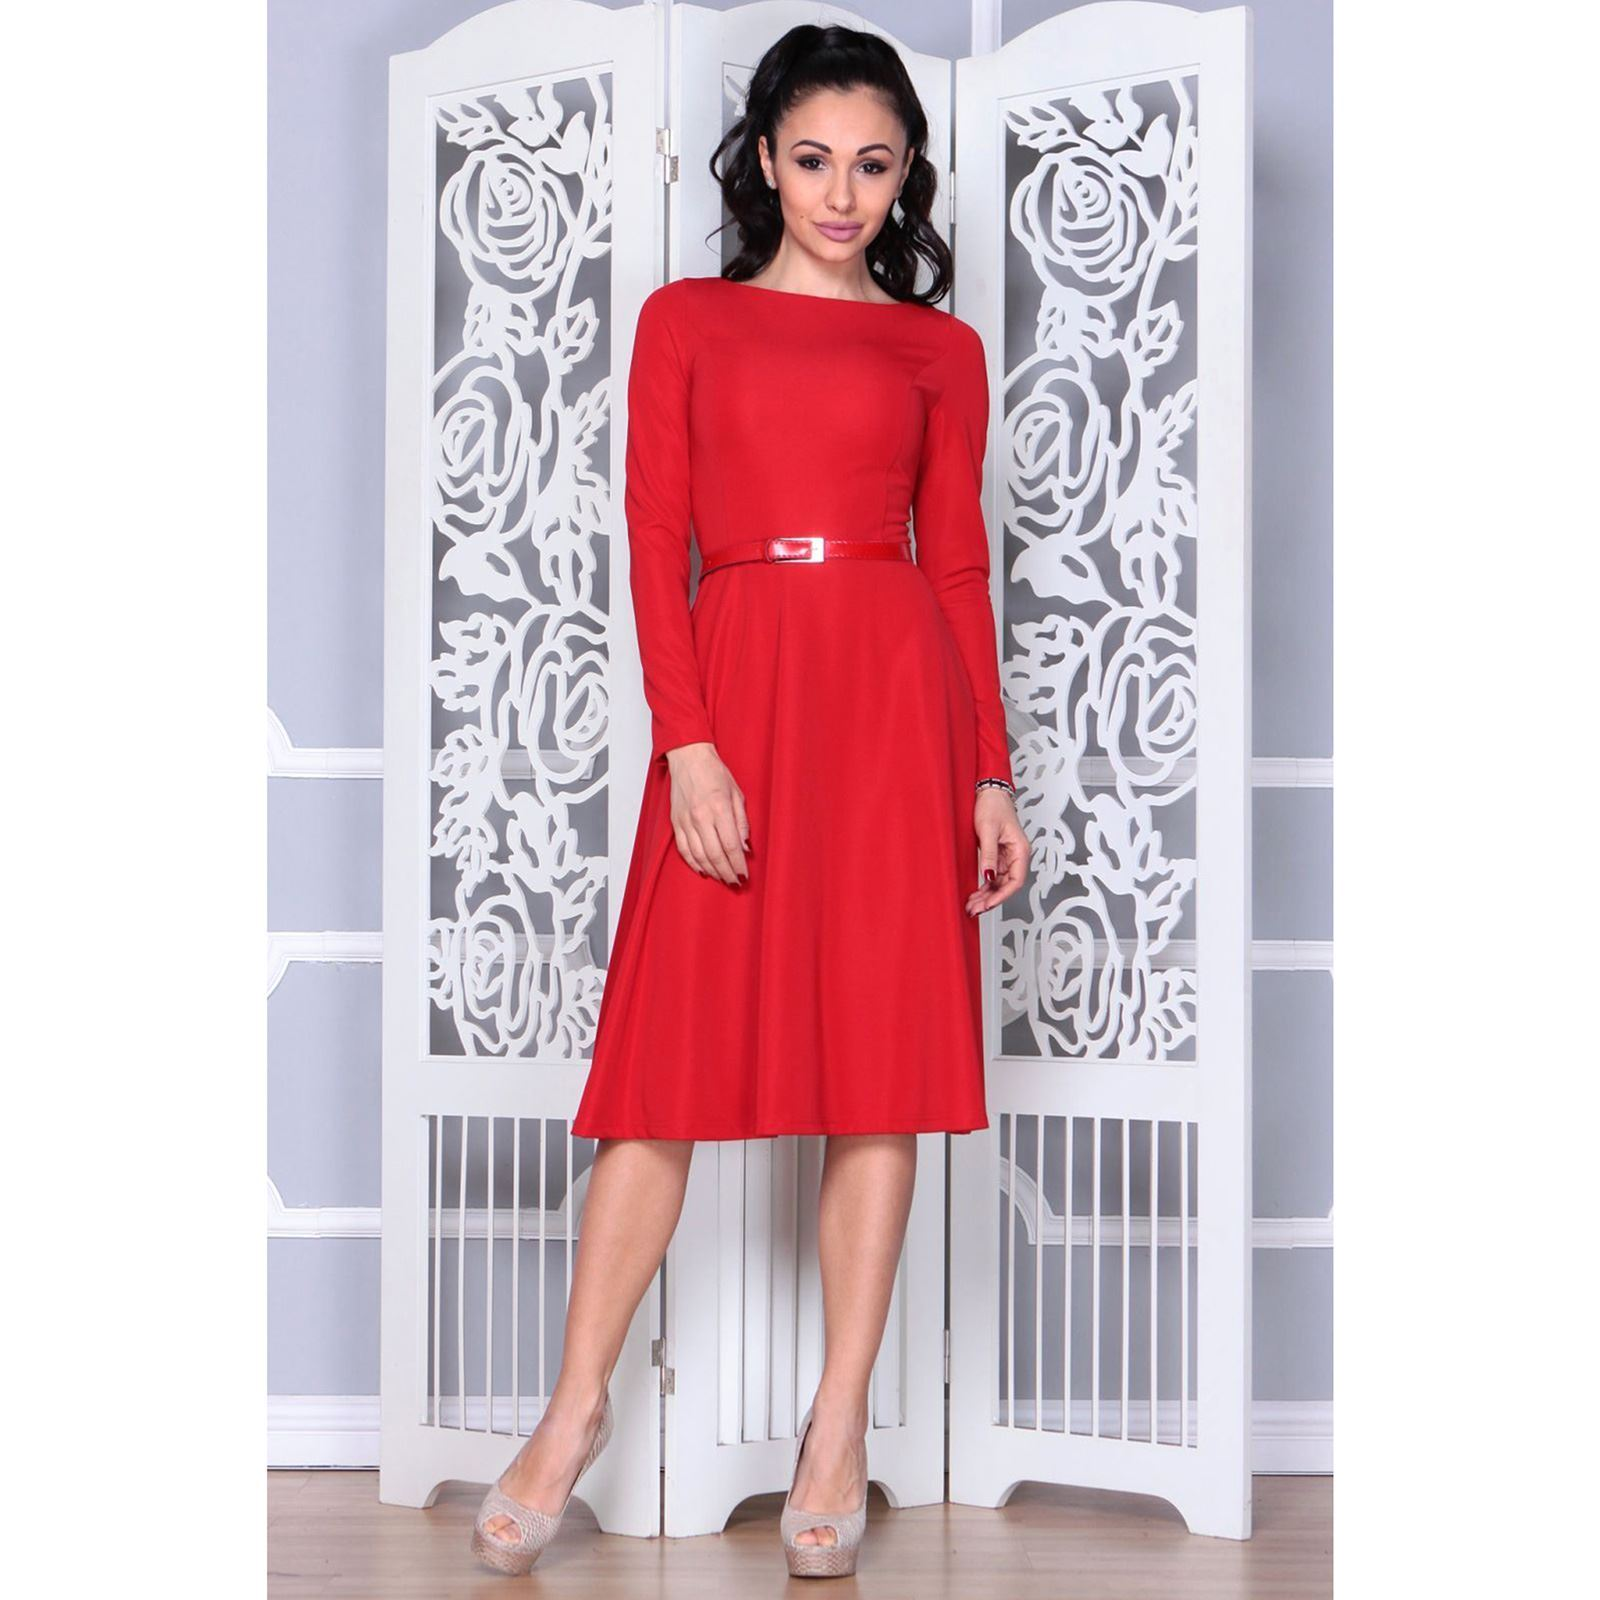 buy online 36cf6 0b161 Laura Bettini Vestito da cerimonia - rosso | BrandAlley